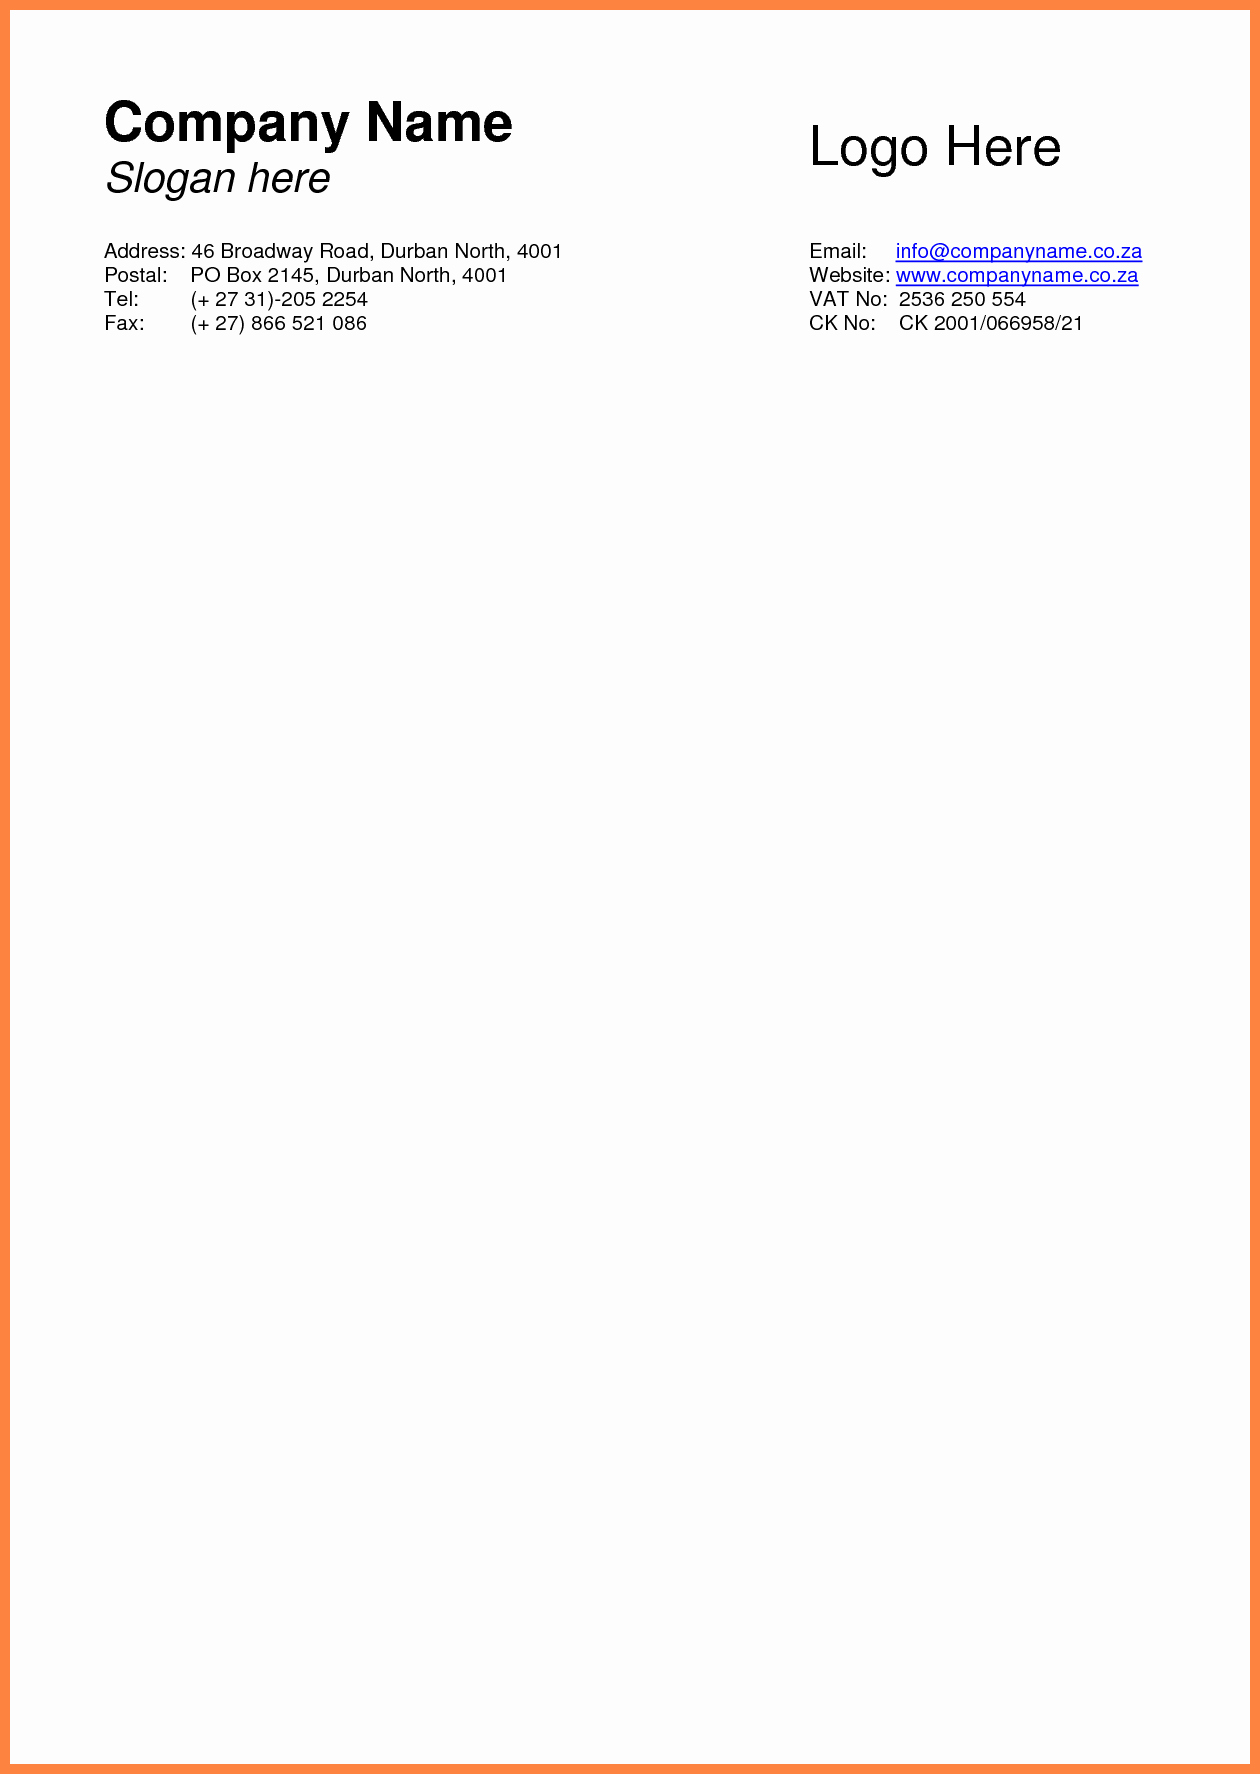 Letterhead Design In Word Fresh 9 Basic Letterhead Template